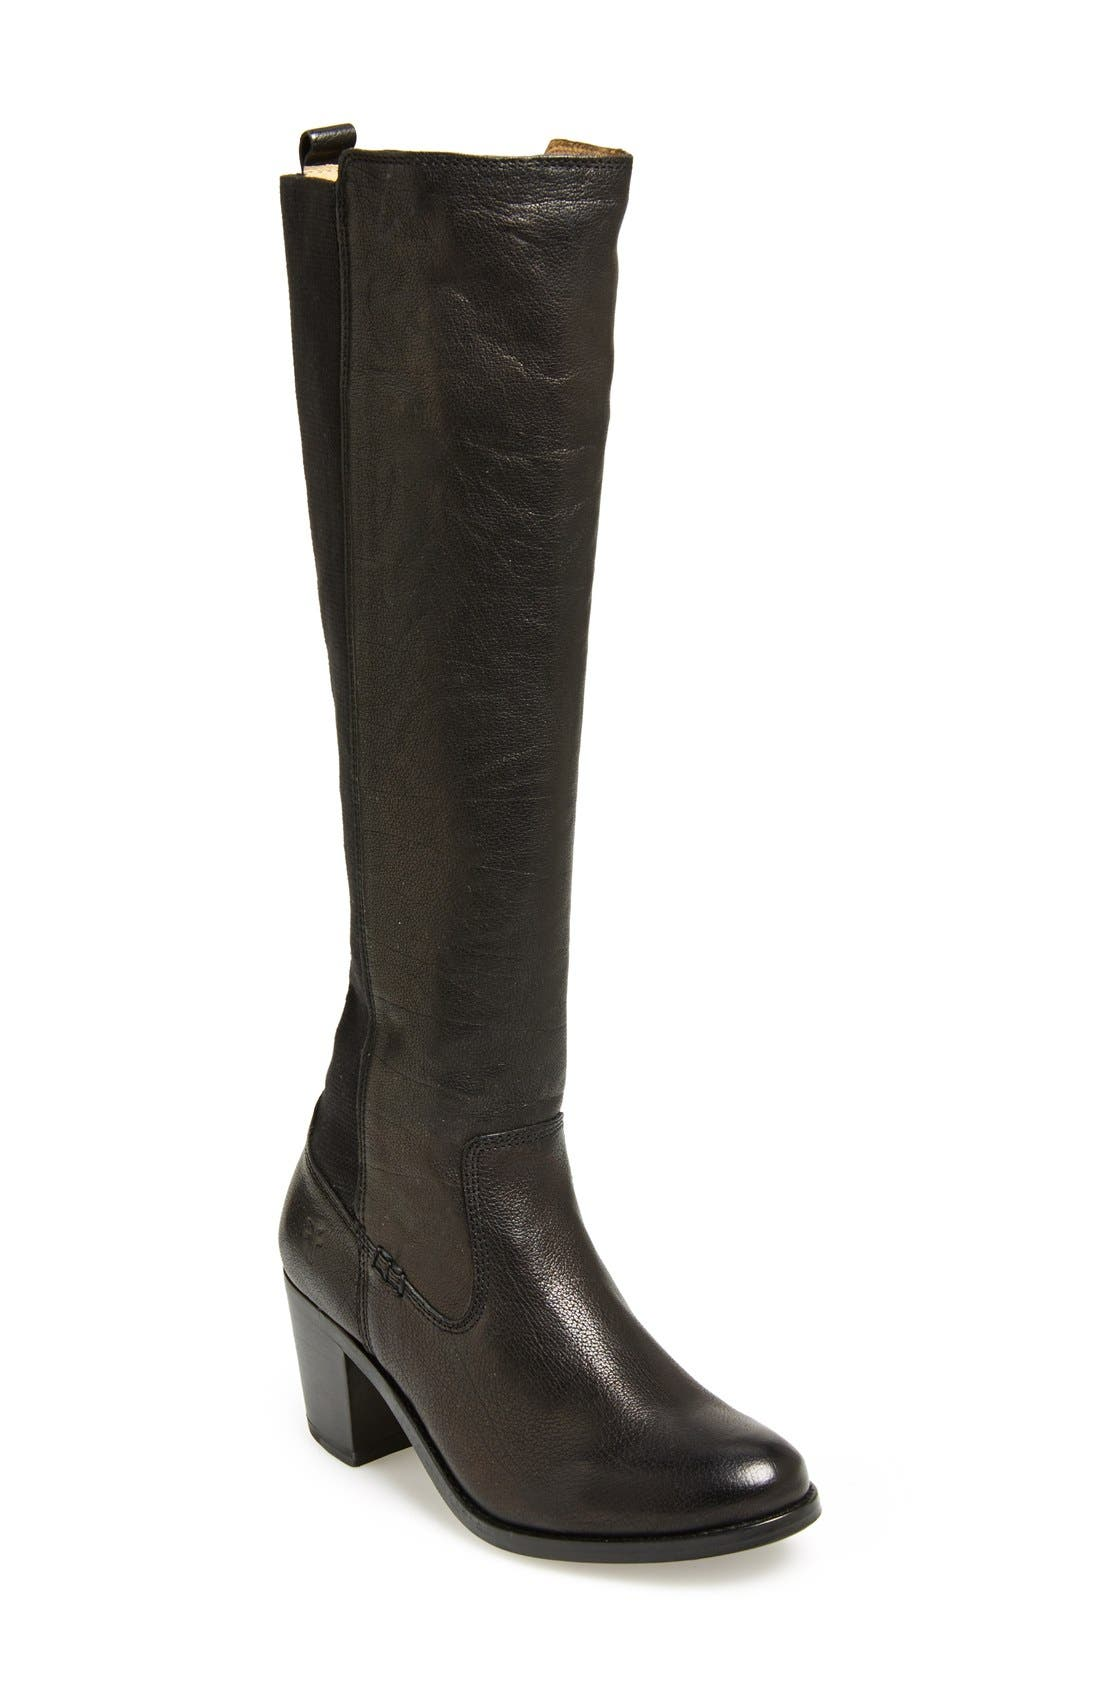 Alternate Image 1 Selected - Frye 'Janish' Gore Tall Boot (Women)